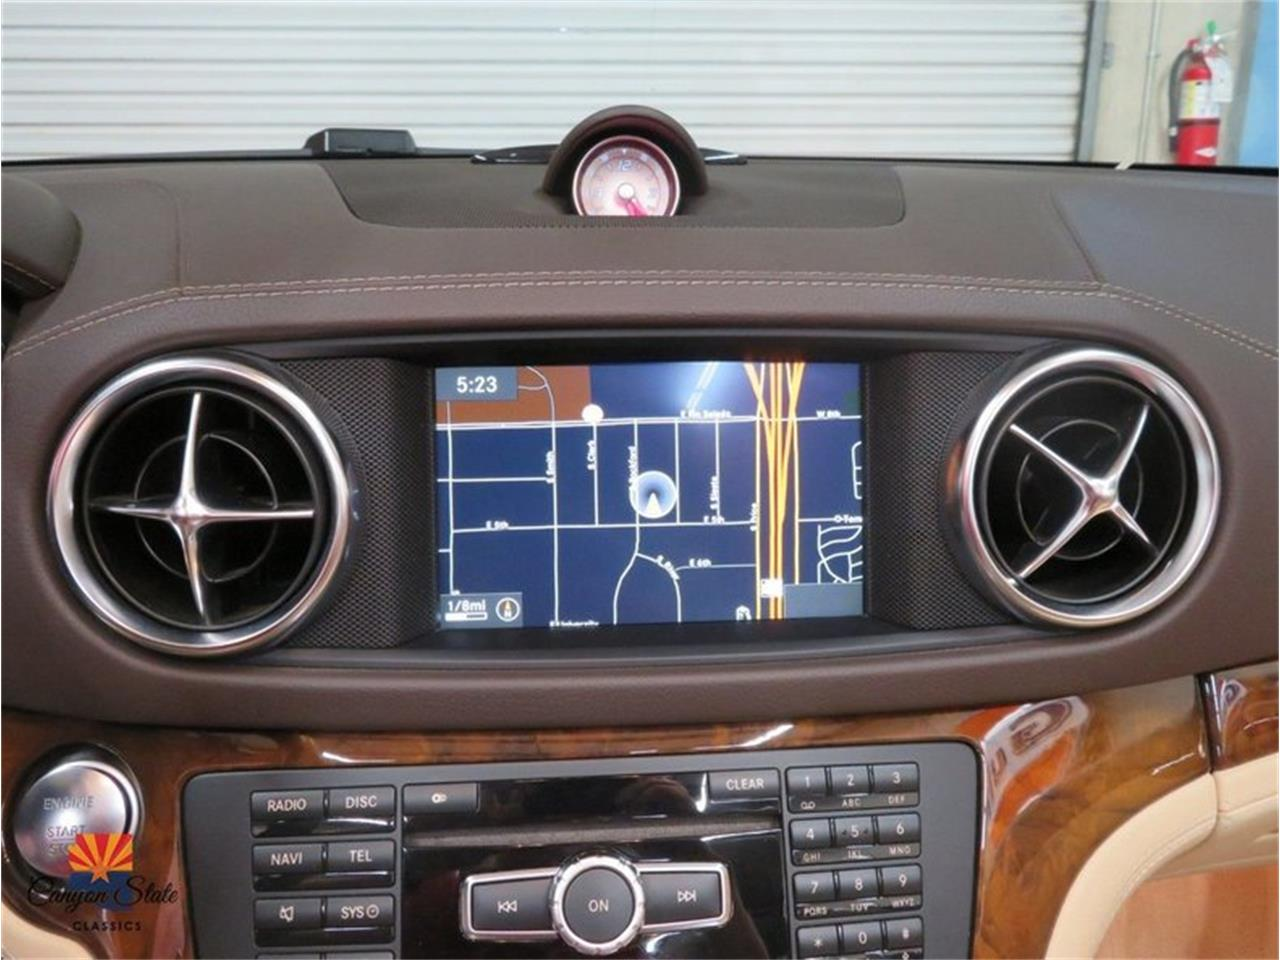 2013 Mercedes-Benz SL-Class for sale in Tempe, AZ – photo 98